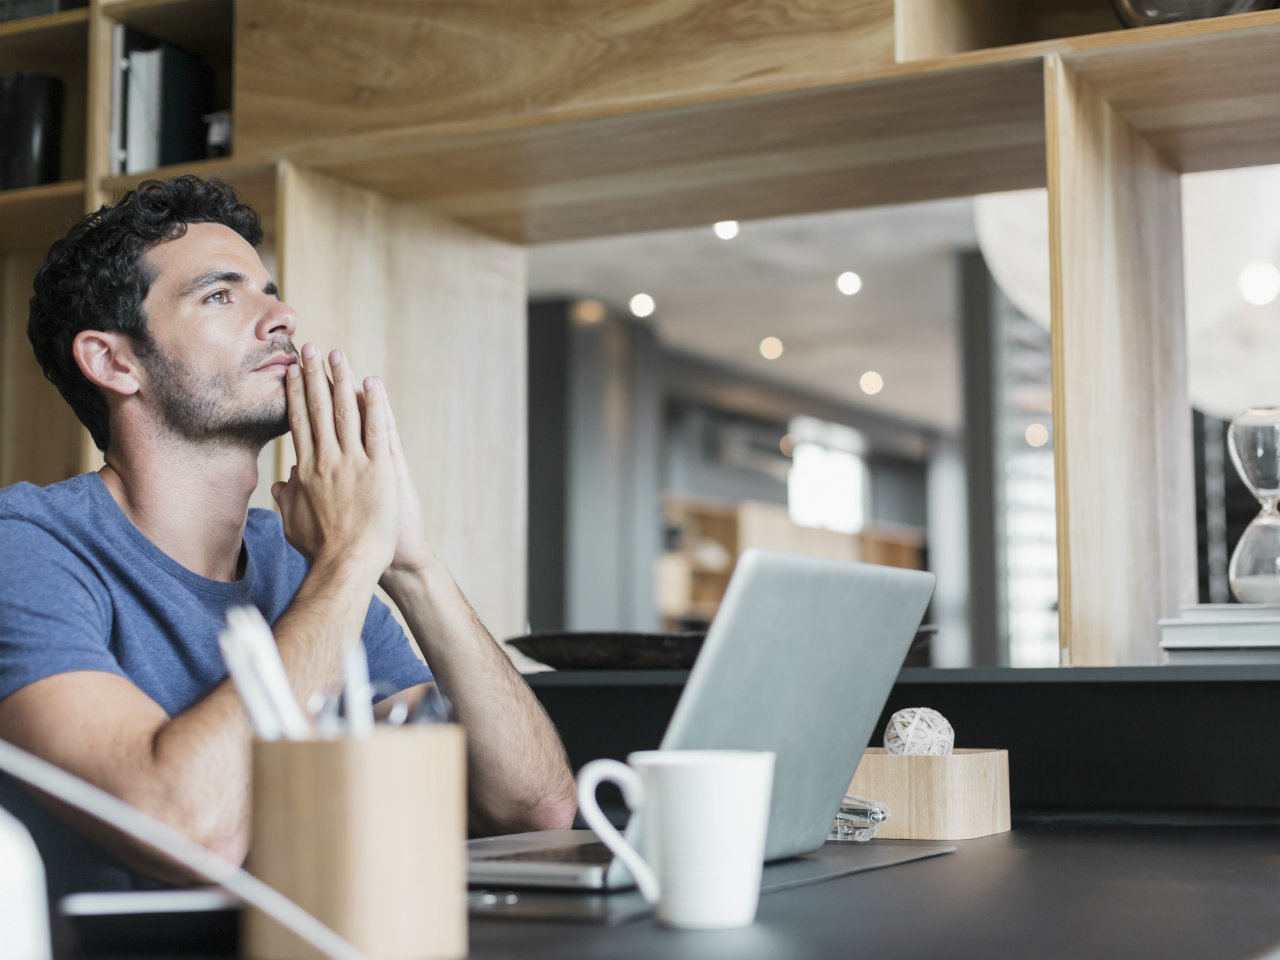 7 ways to stay focused at work